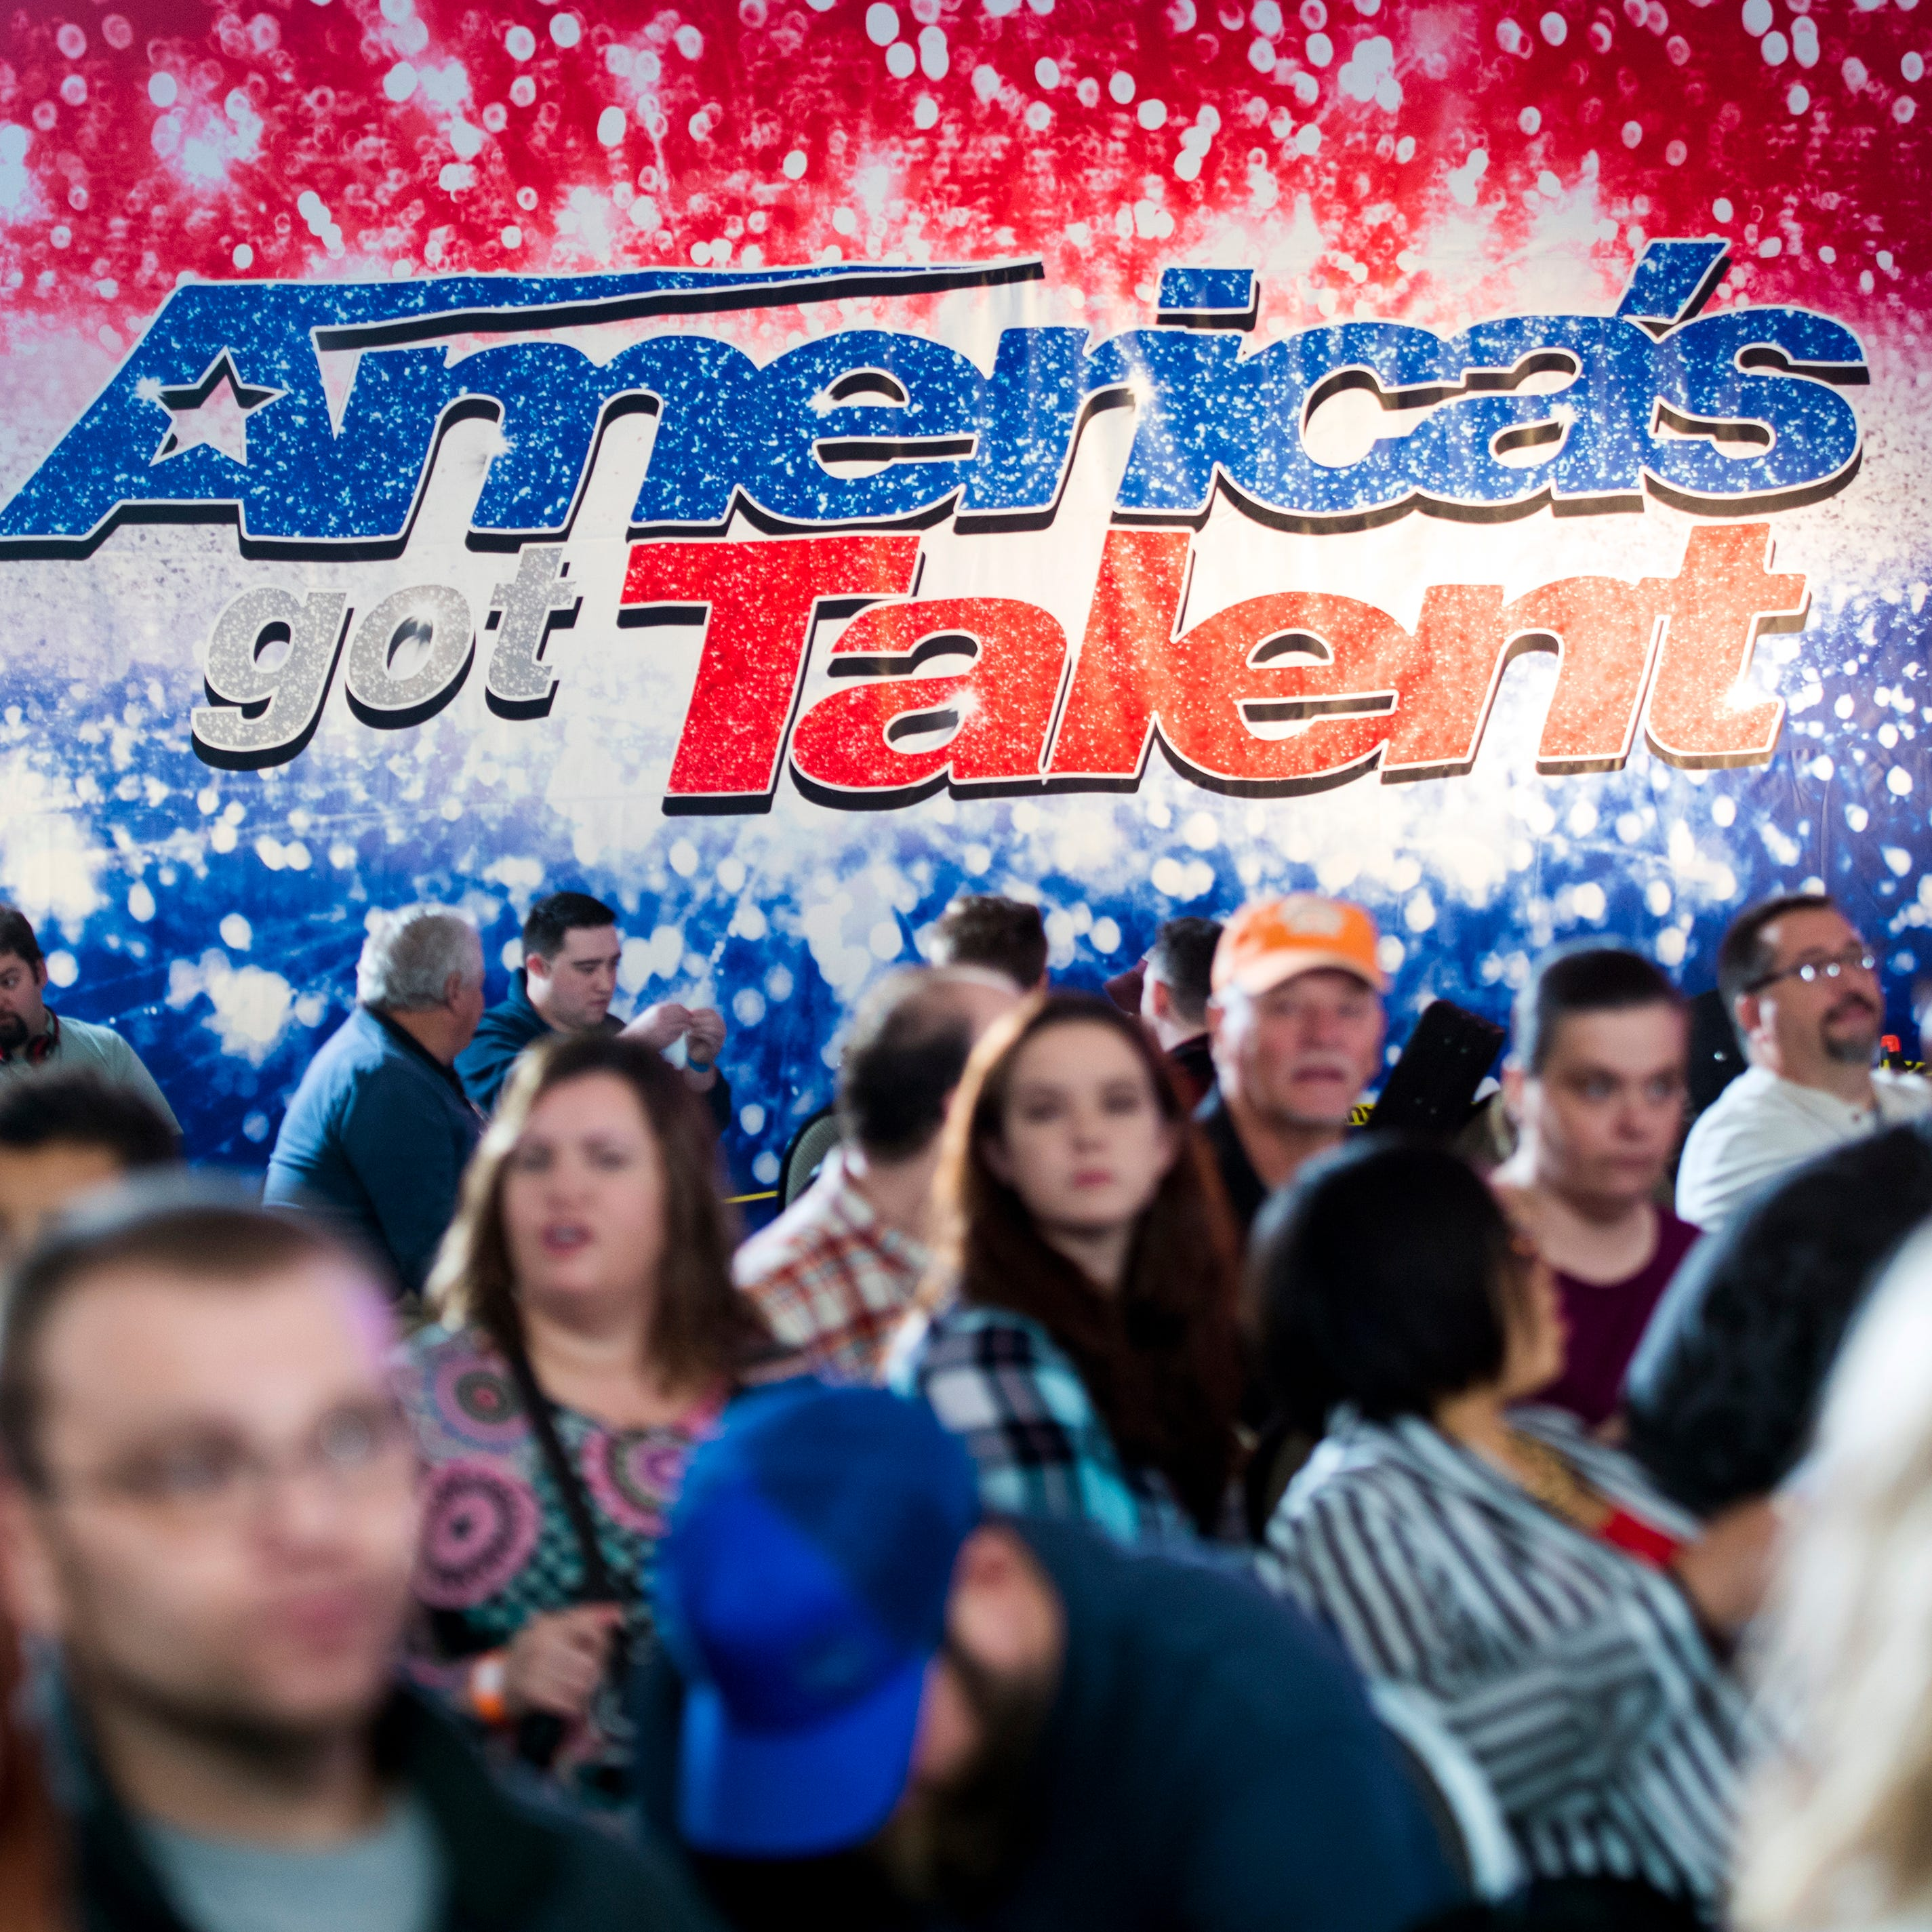 'America's Got Talent' Knoxville auditions bring more than 1,000 vying for a spot on show